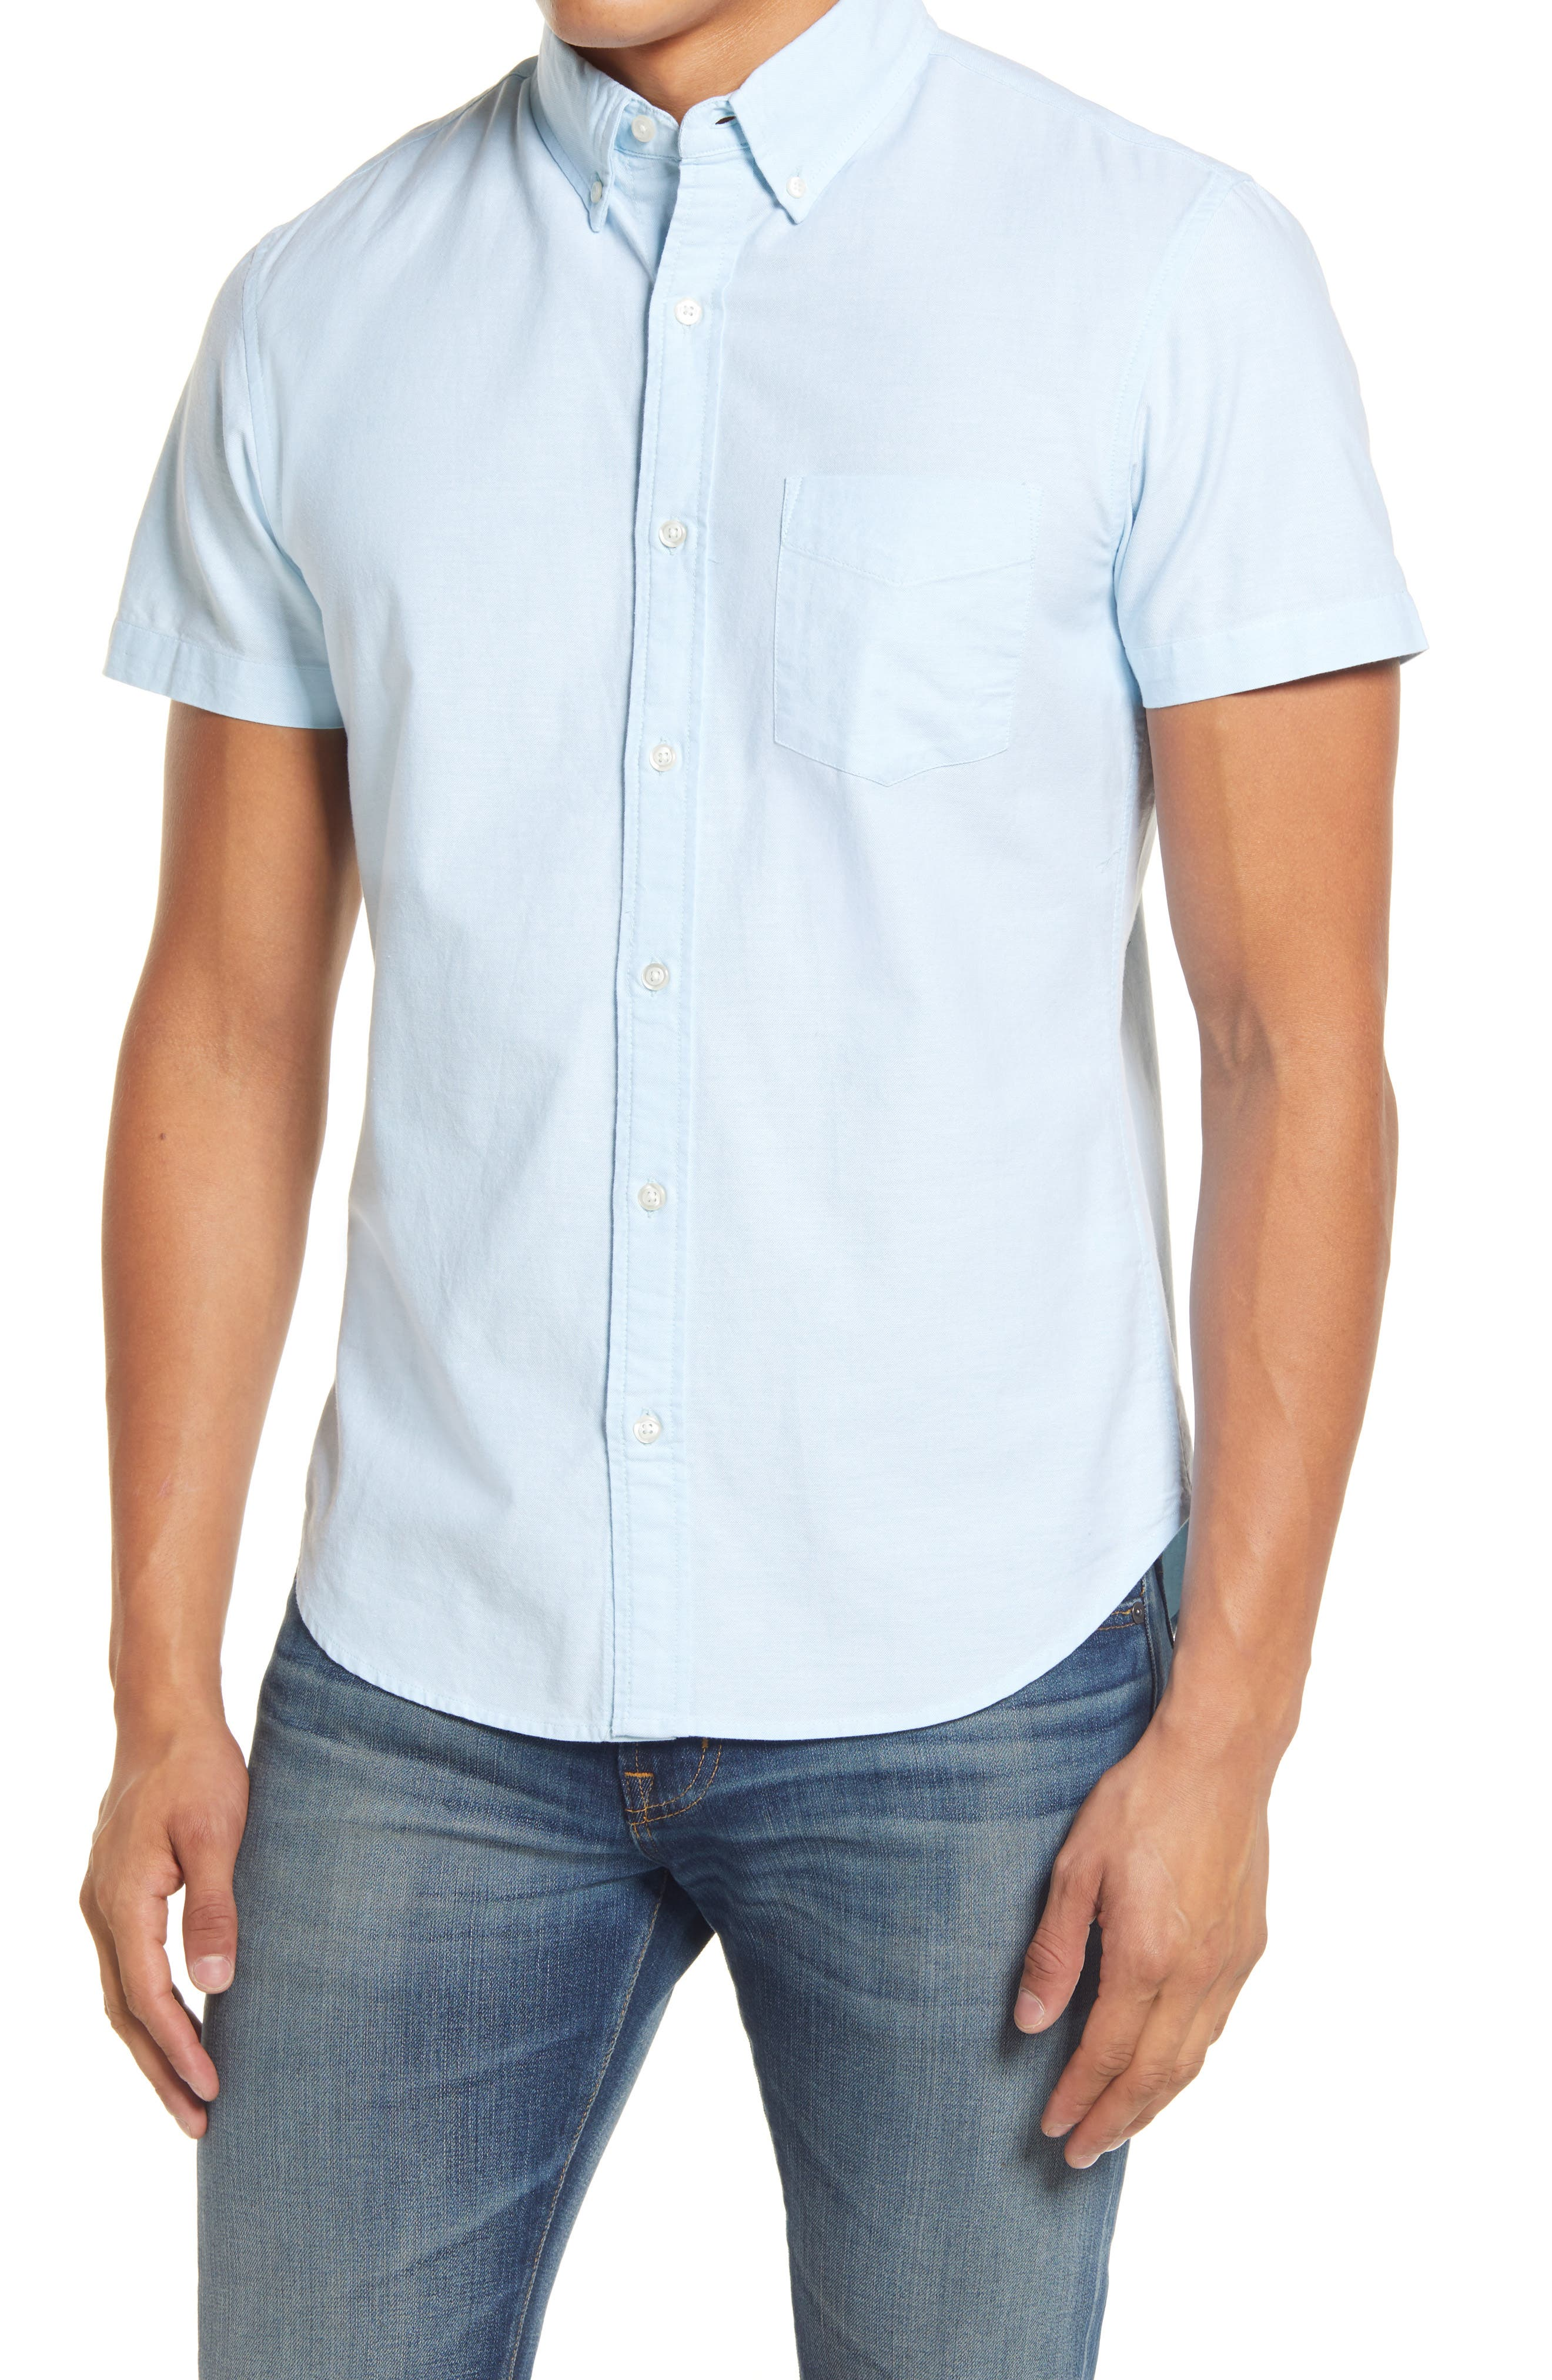 Crisp oxford cotton elevates a smart, casual shirt with versatile appeal. Style Name: Bonobos Slim Fit Oxford Short Sleeve Button-Down Shirt. Style Number: 6040995 1. Available in stores.